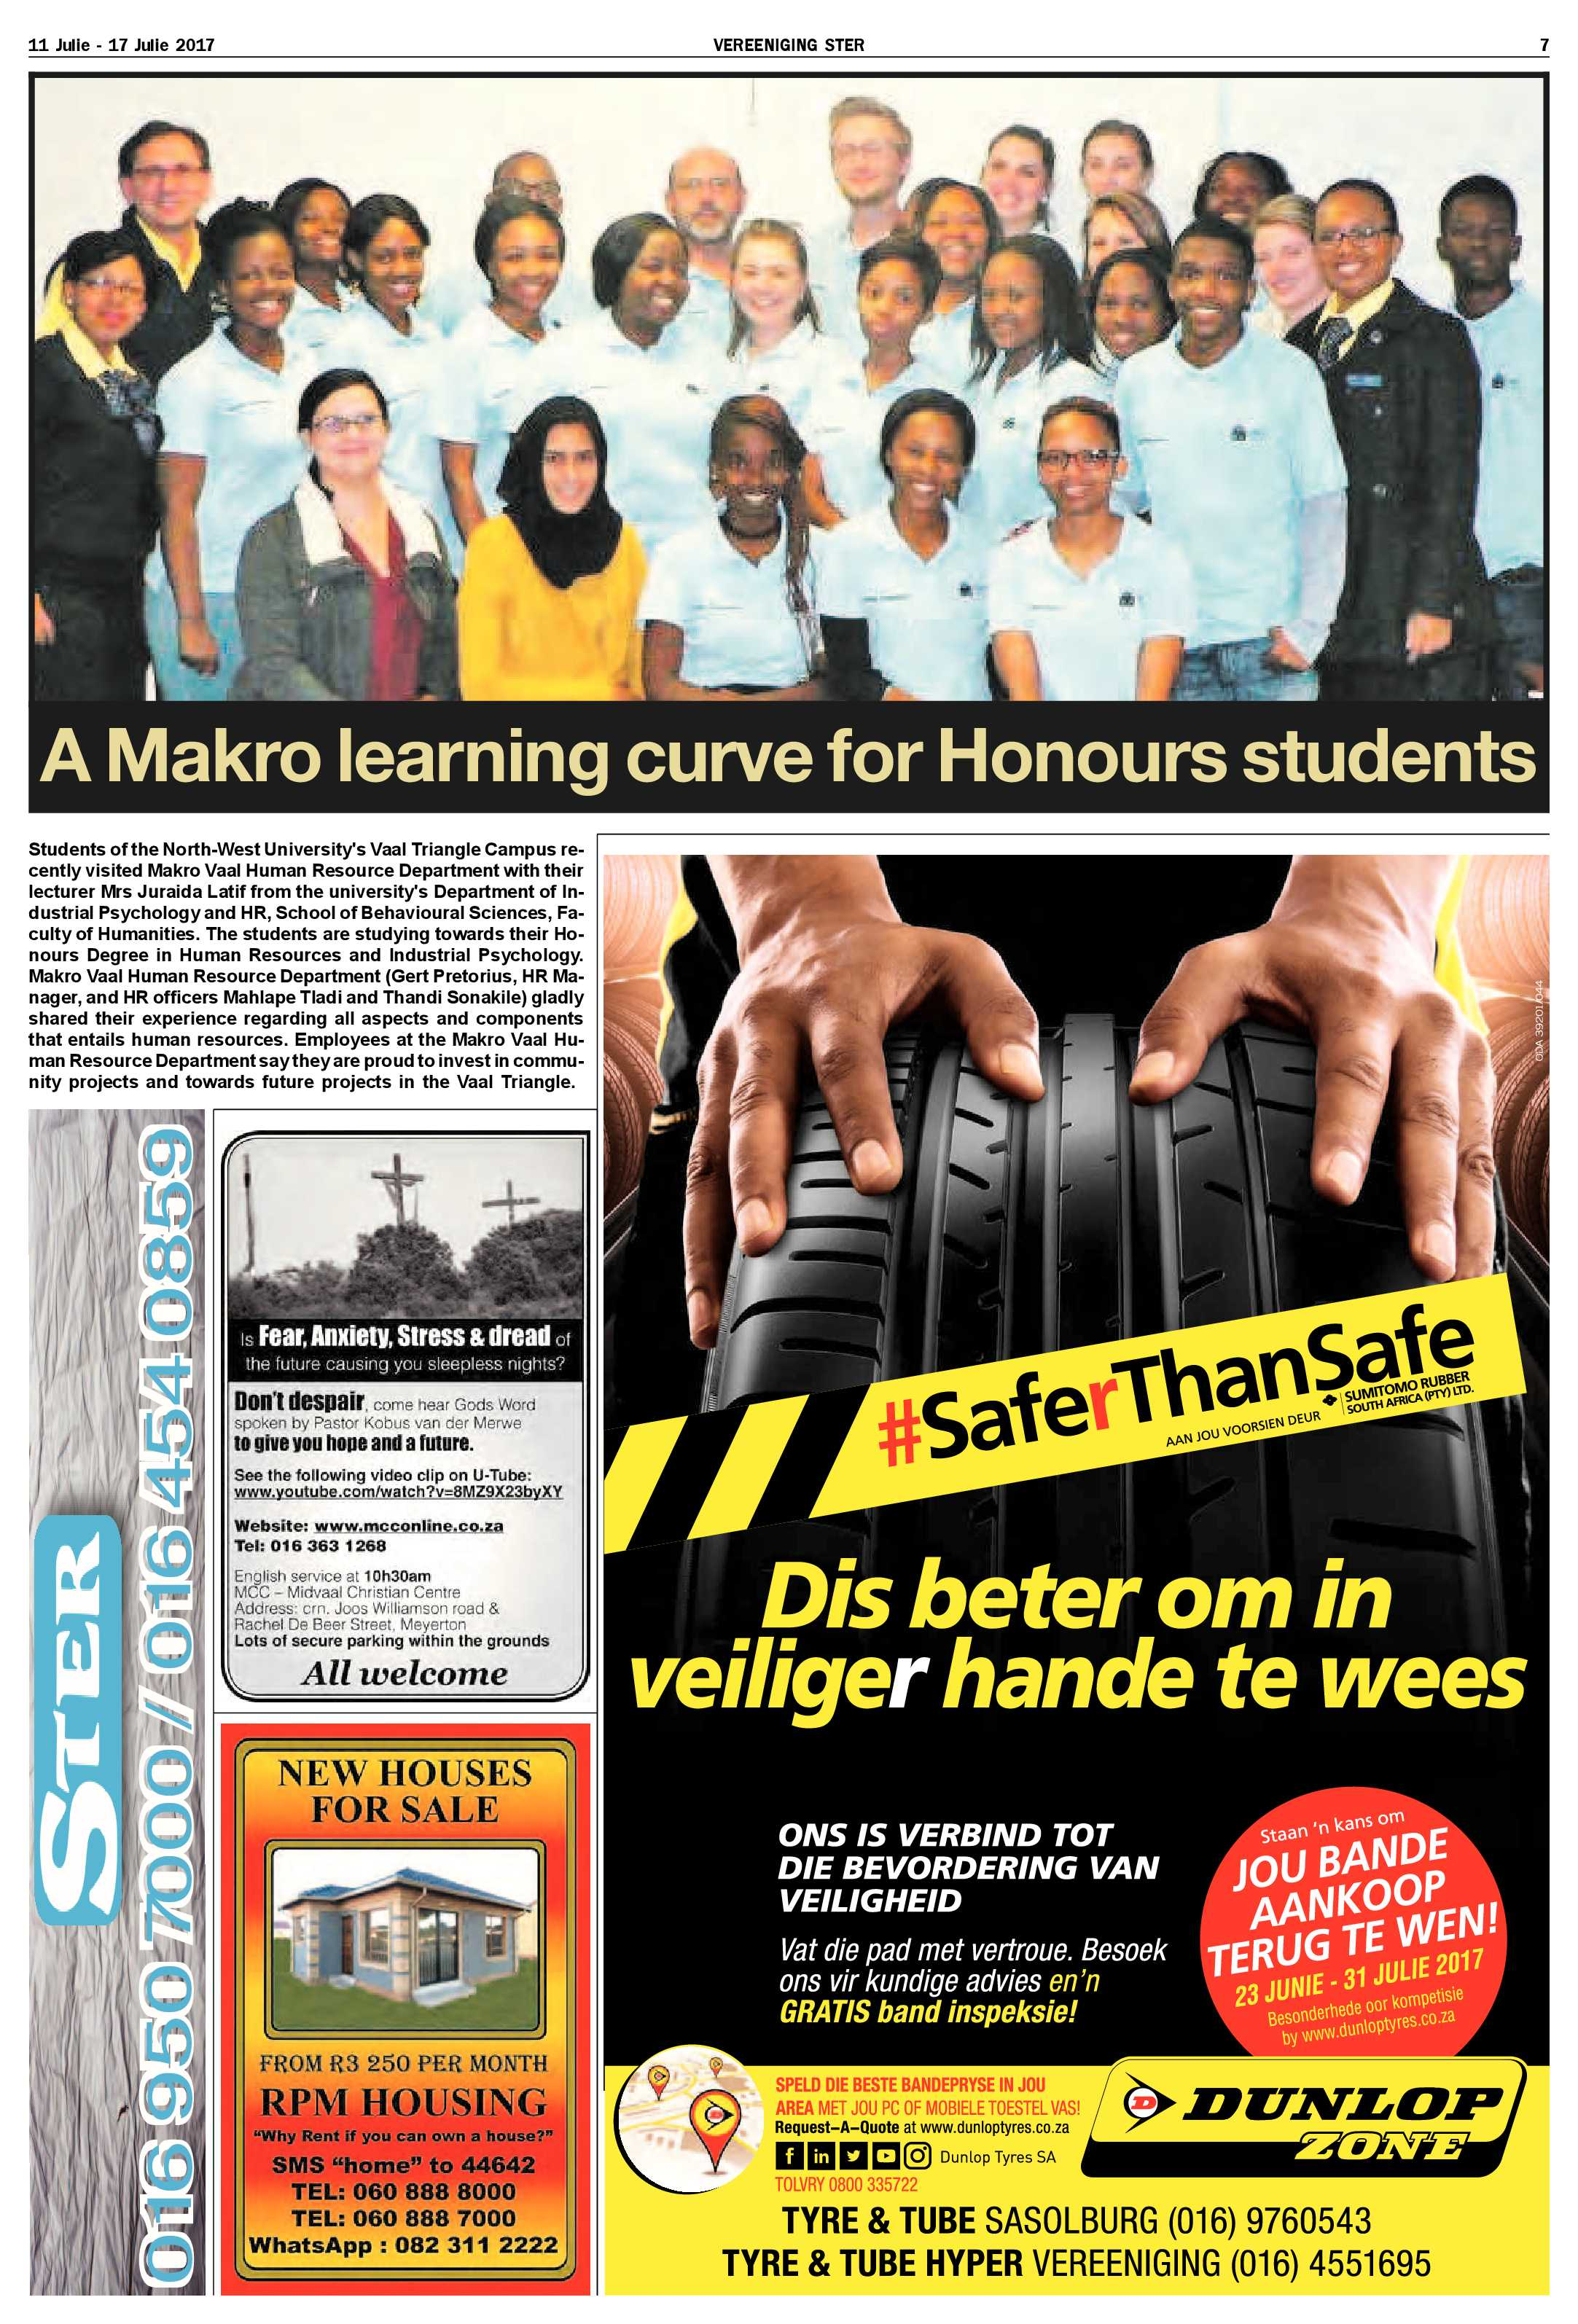 vereeniging-ster-11-17-julie-2017-epapers-page-7